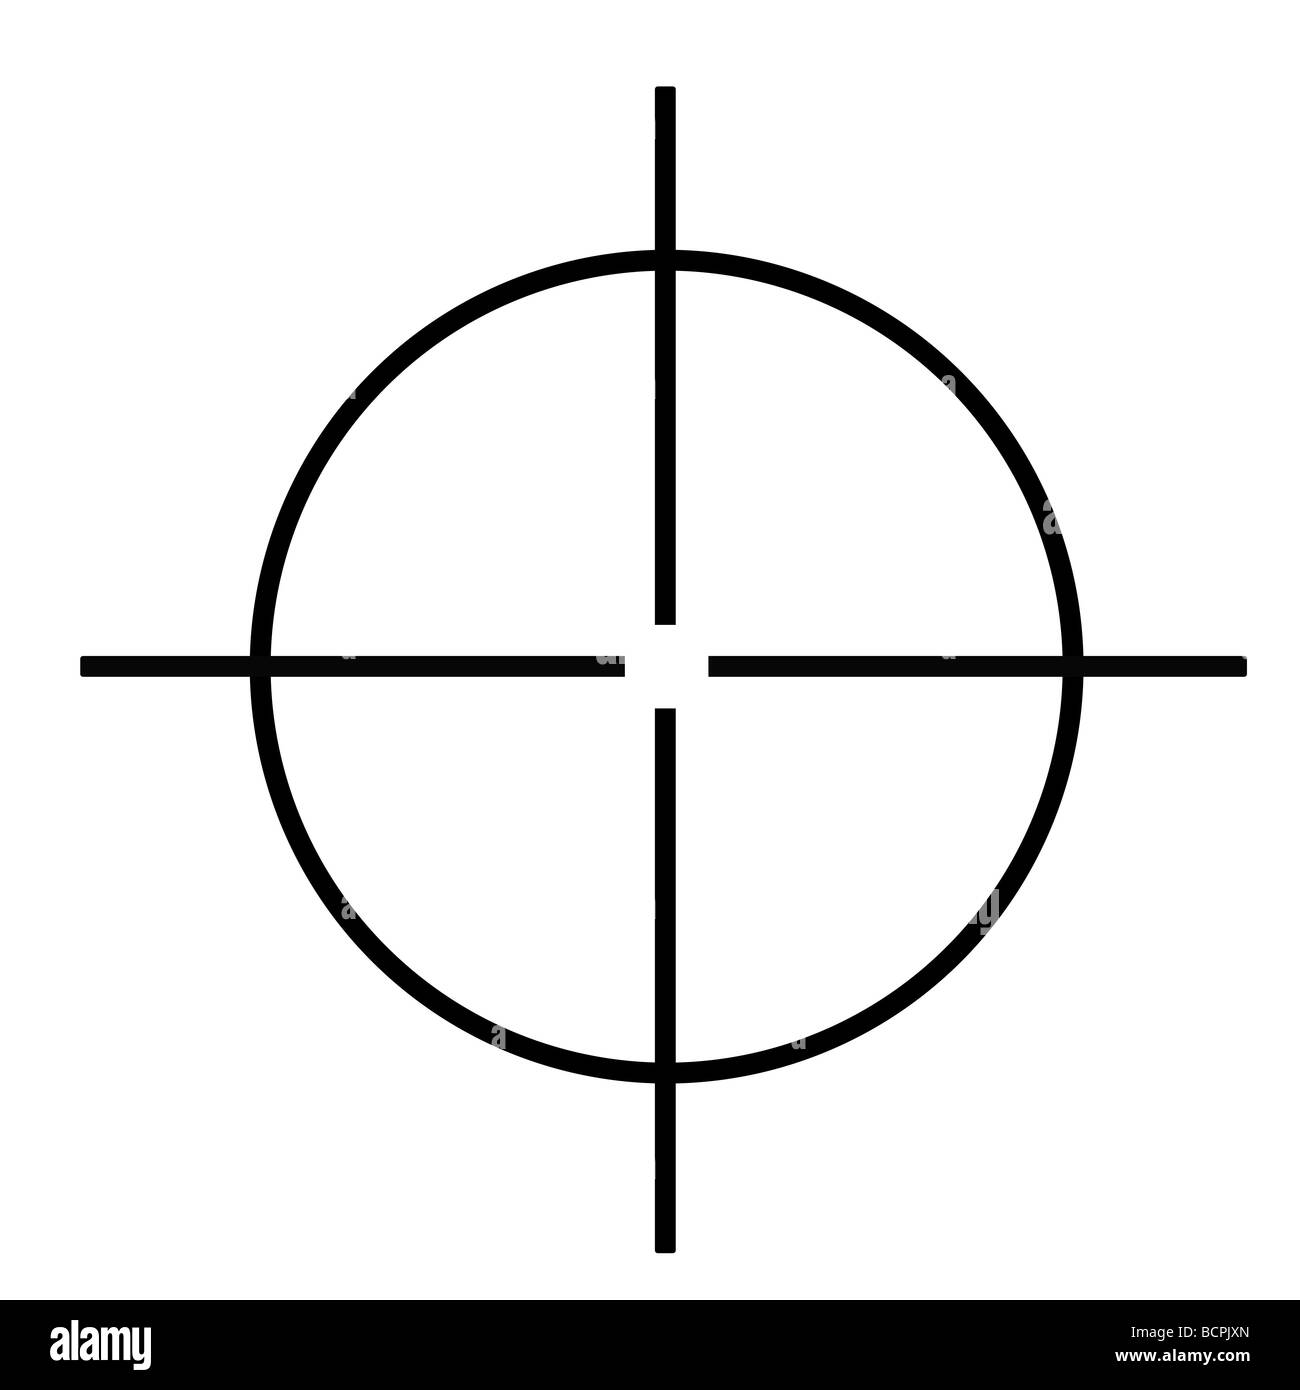 Sniper rifle cross hairs isolated on white background - Stock Image